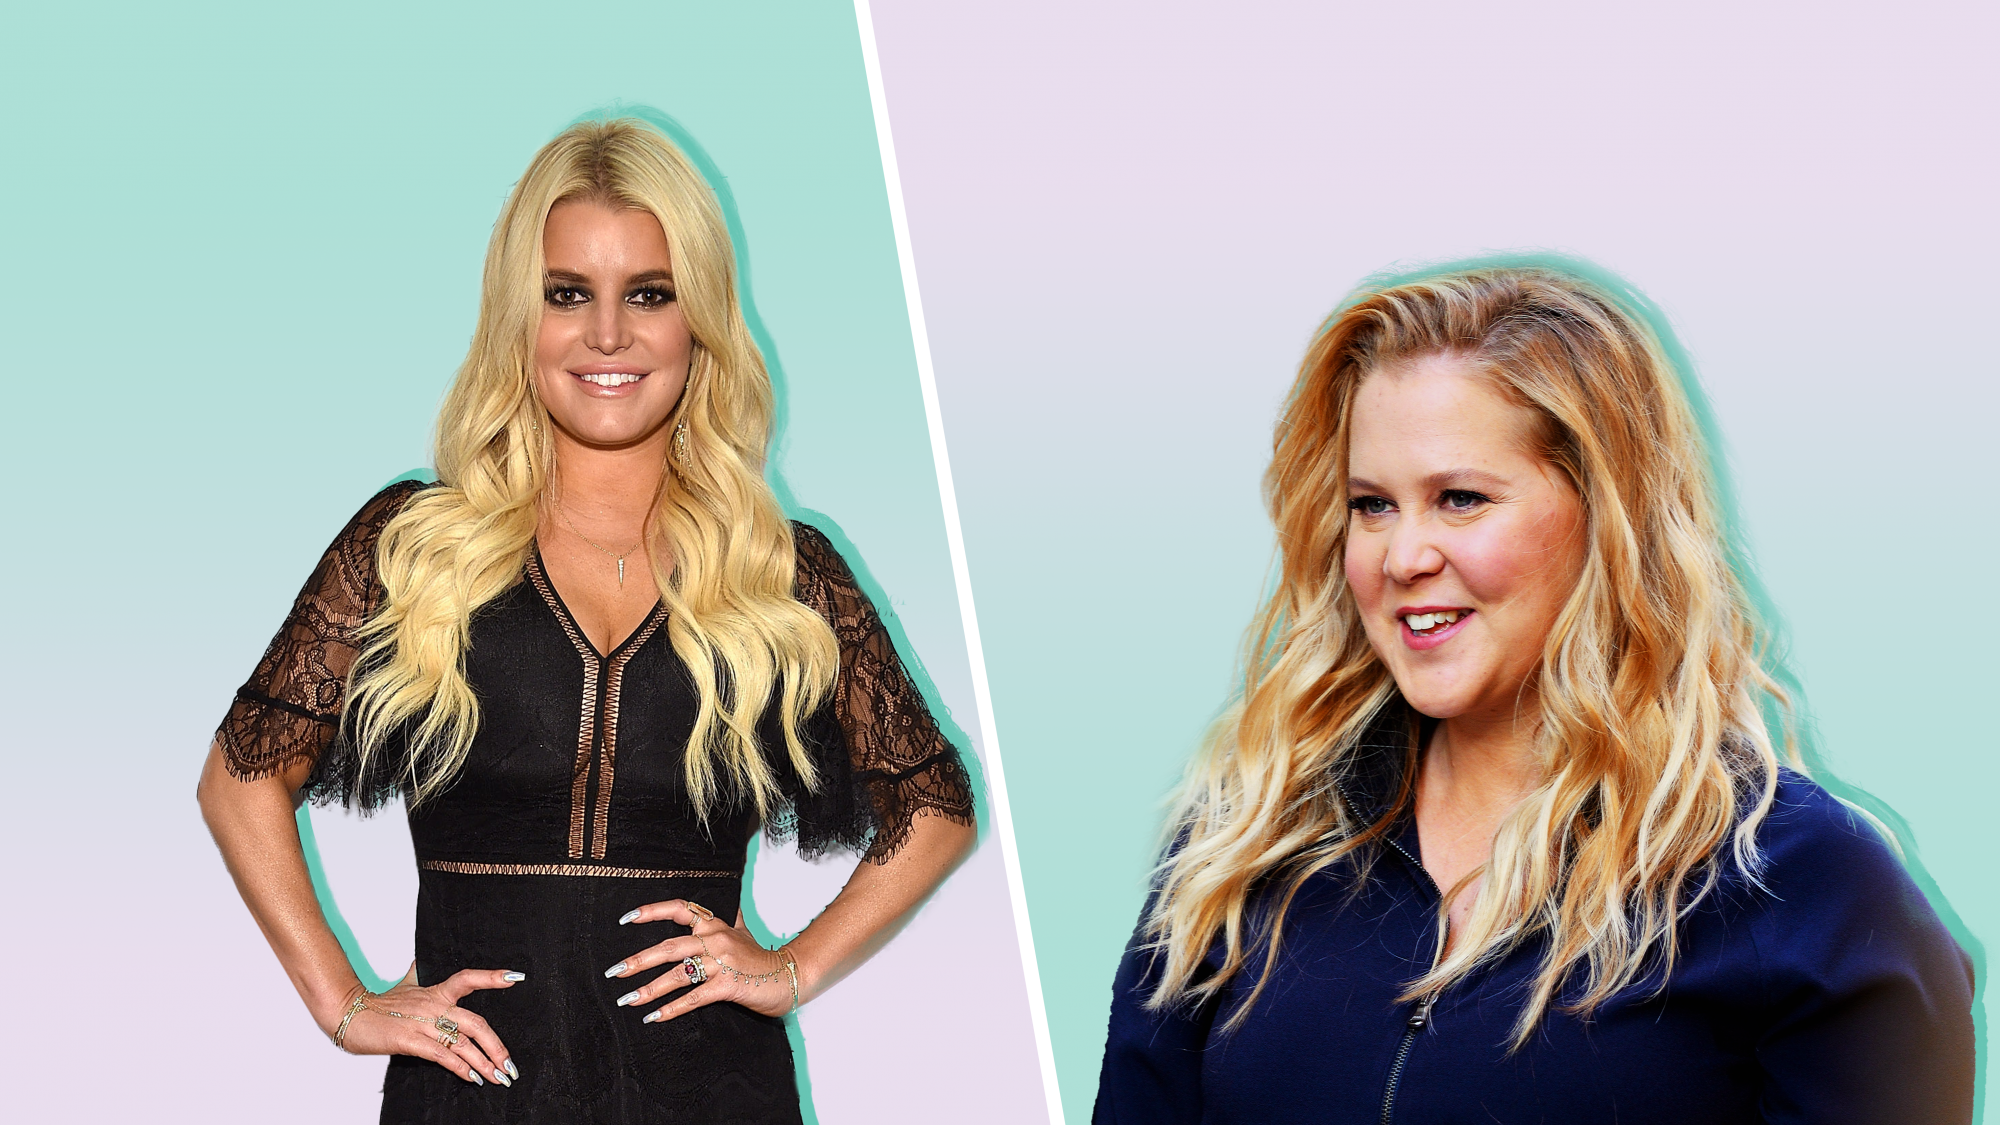 amy-schumer-jessica-simpson-baby-weightloss amy-schumer jessica-simpson baby-weightloss